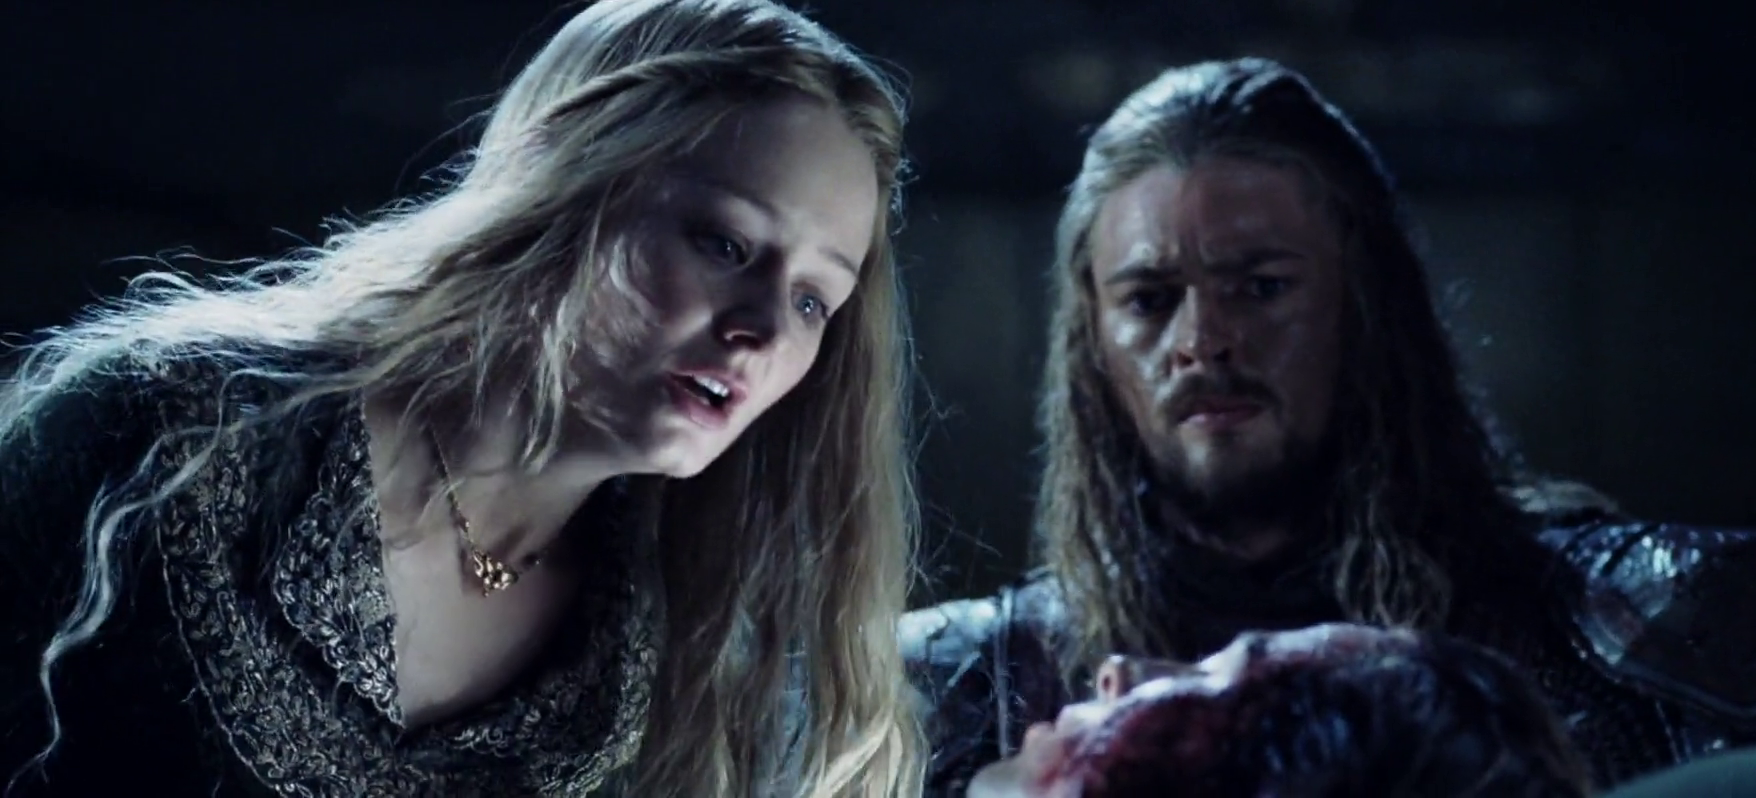 eomer and eowyn relationship quiz